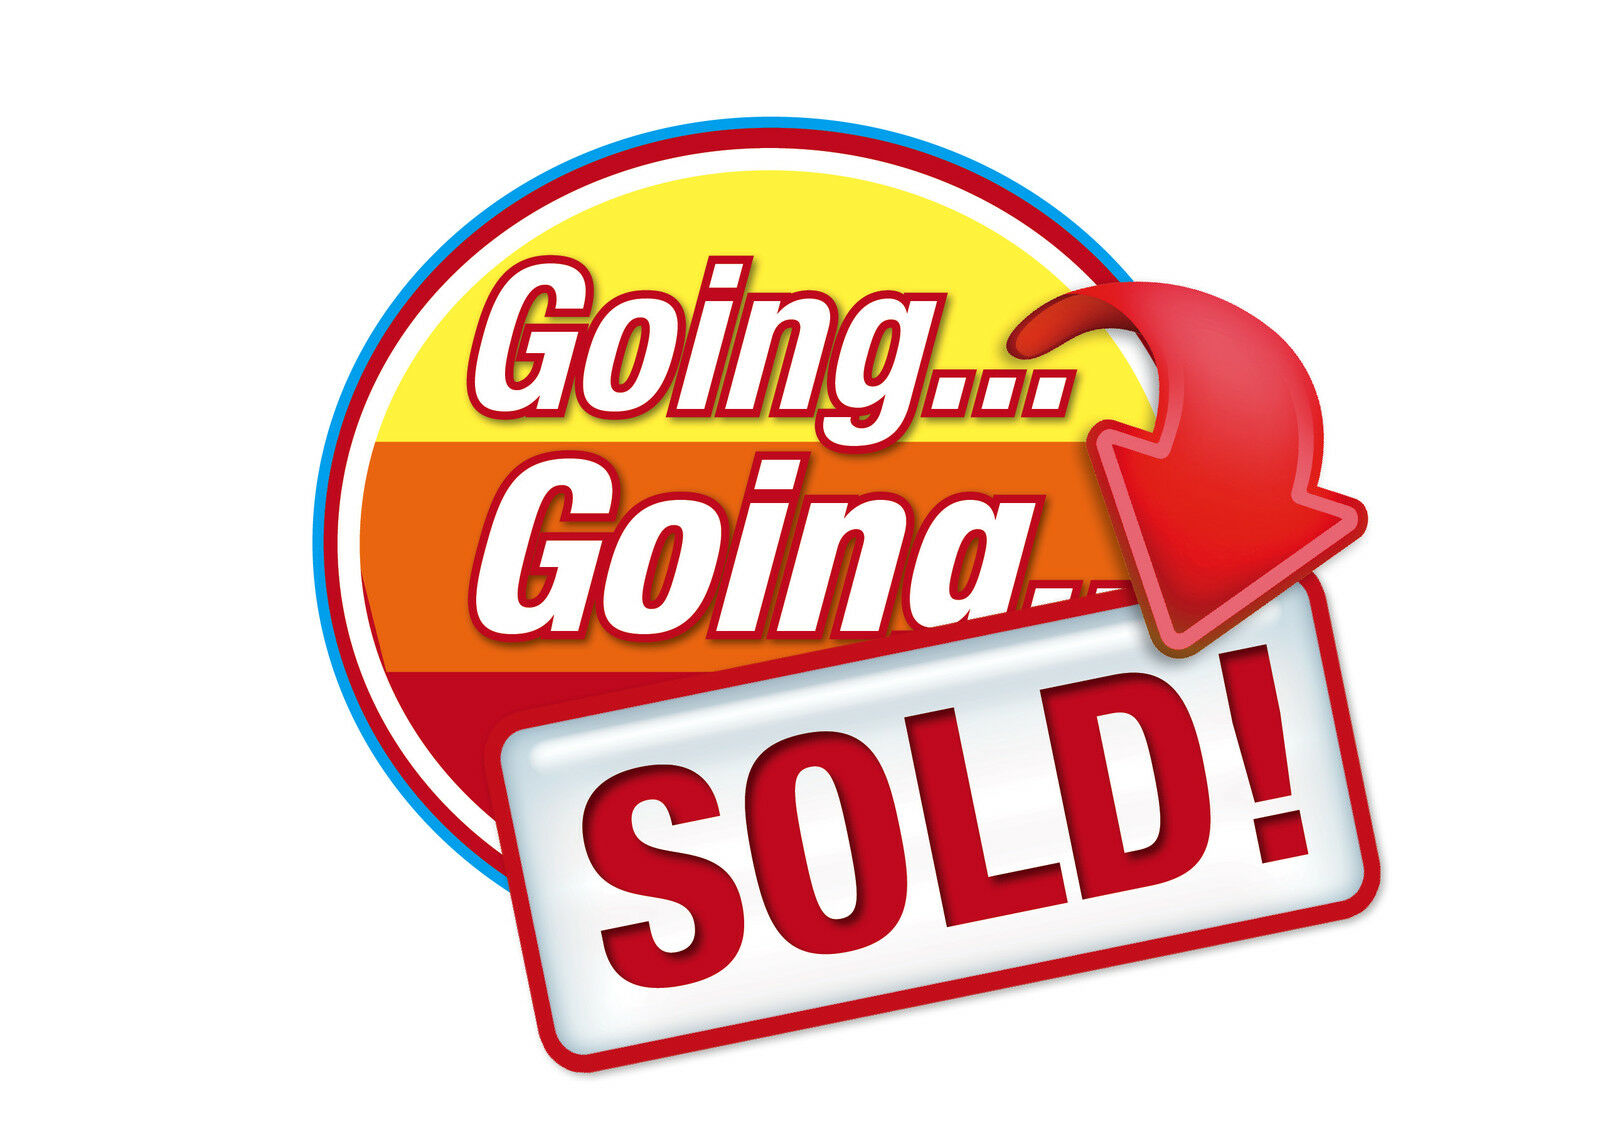 Going Going Sold